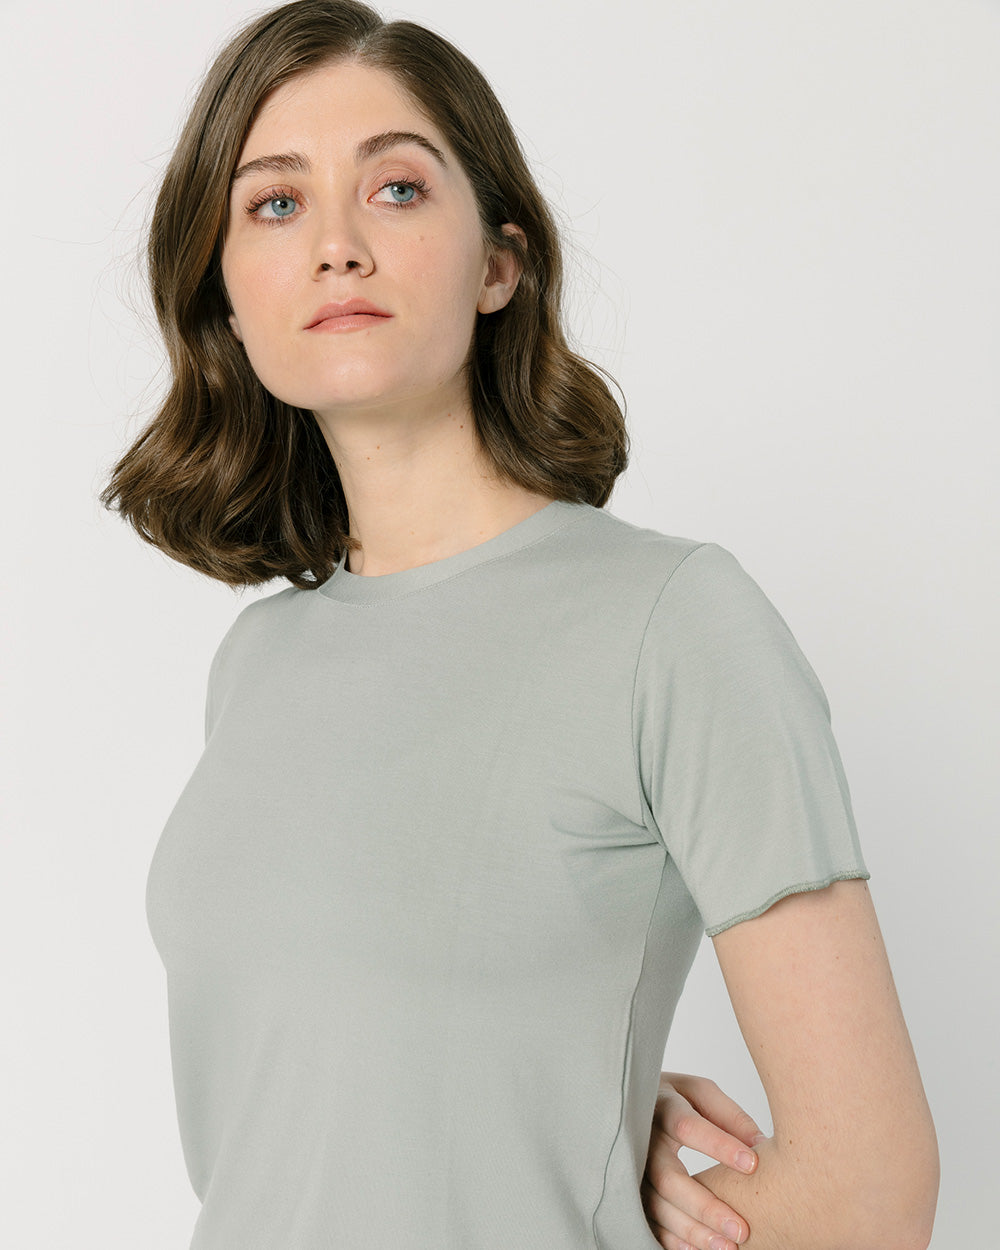 Sage Green Women's T-Shirt